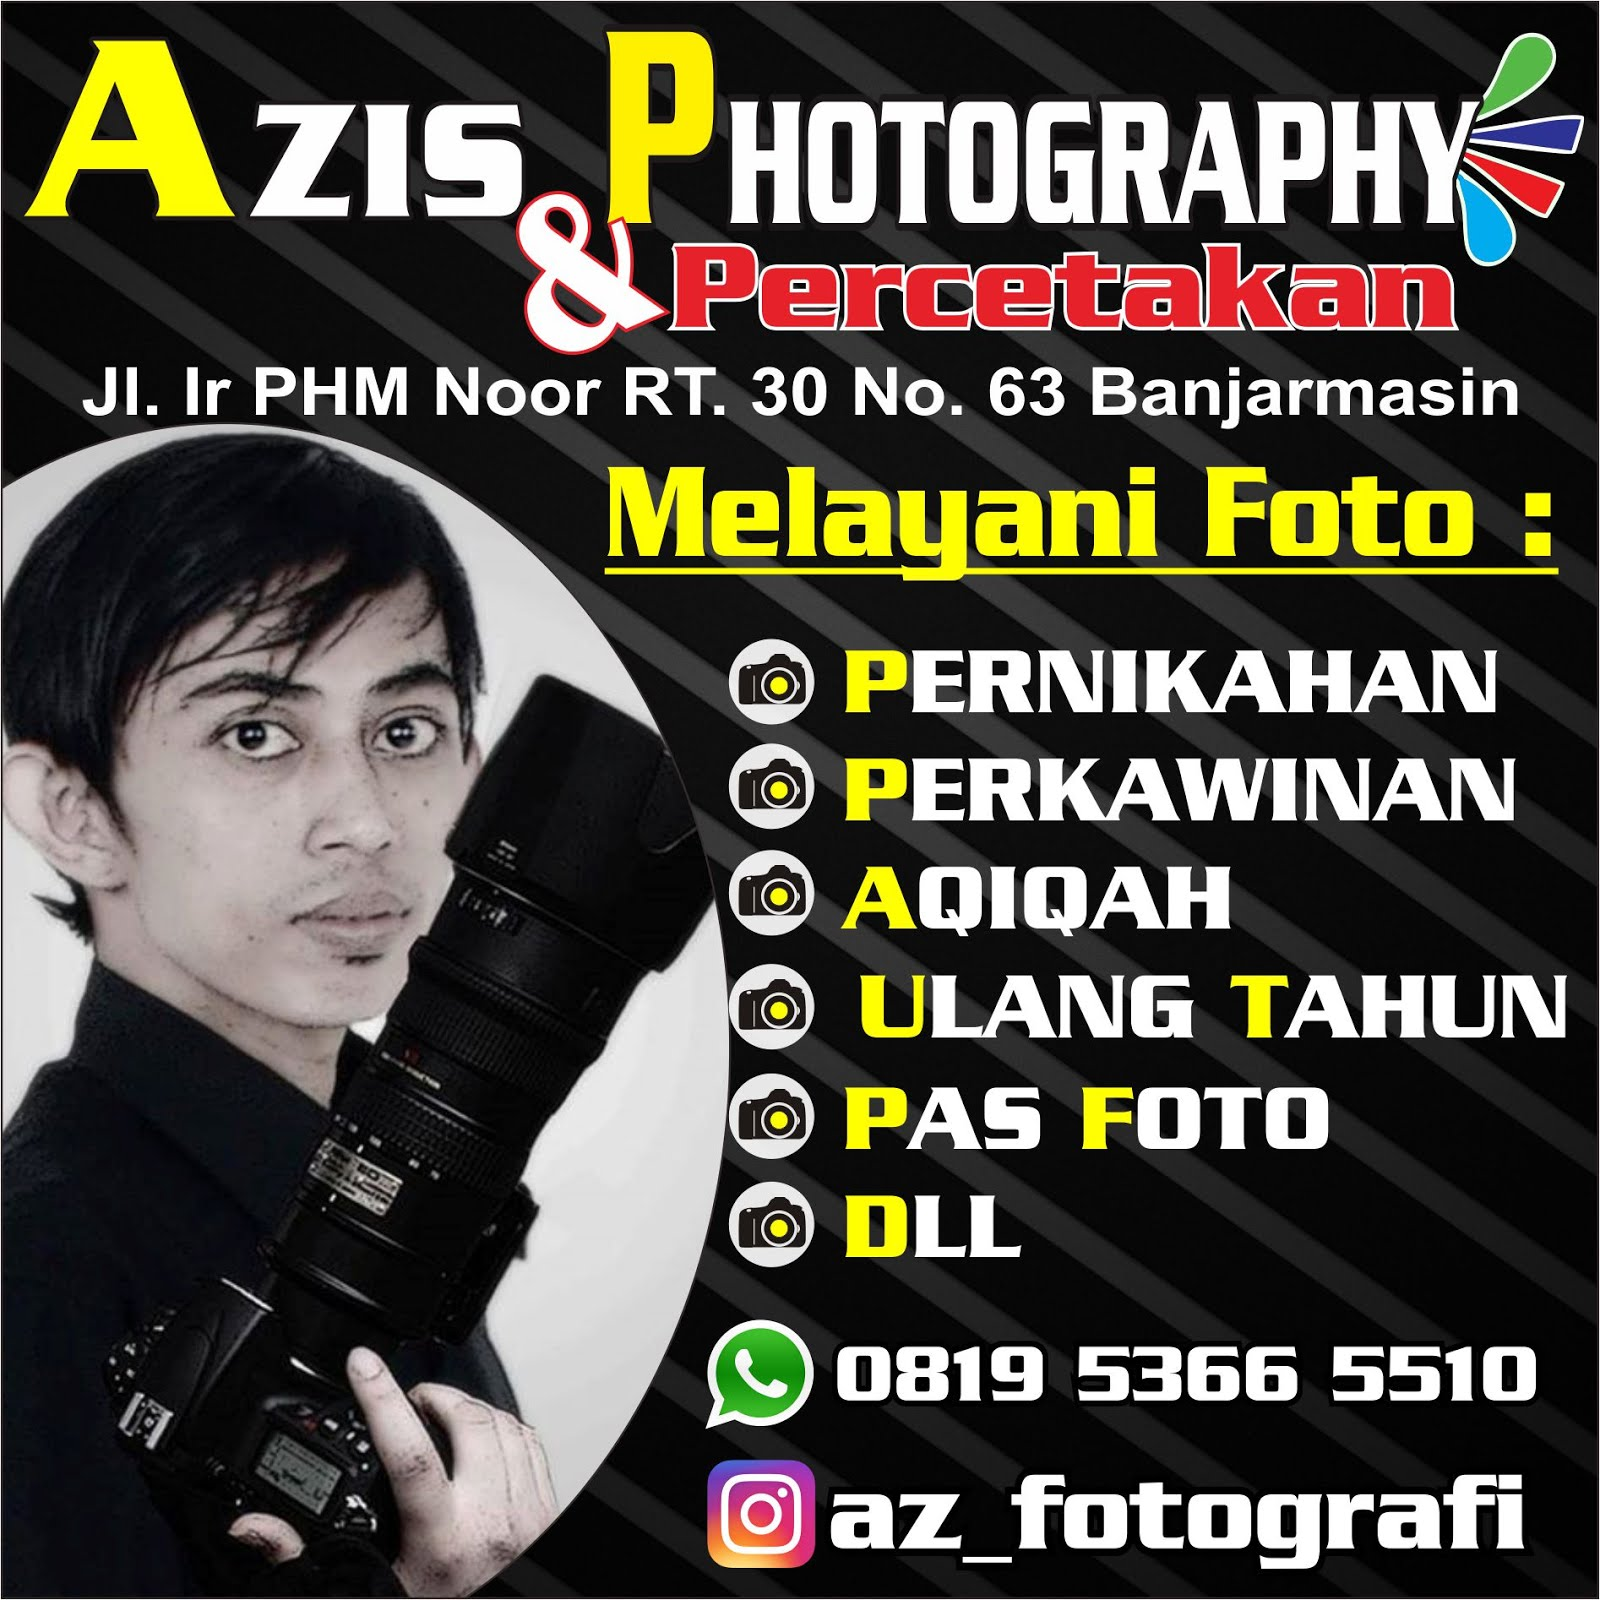 Azis photography